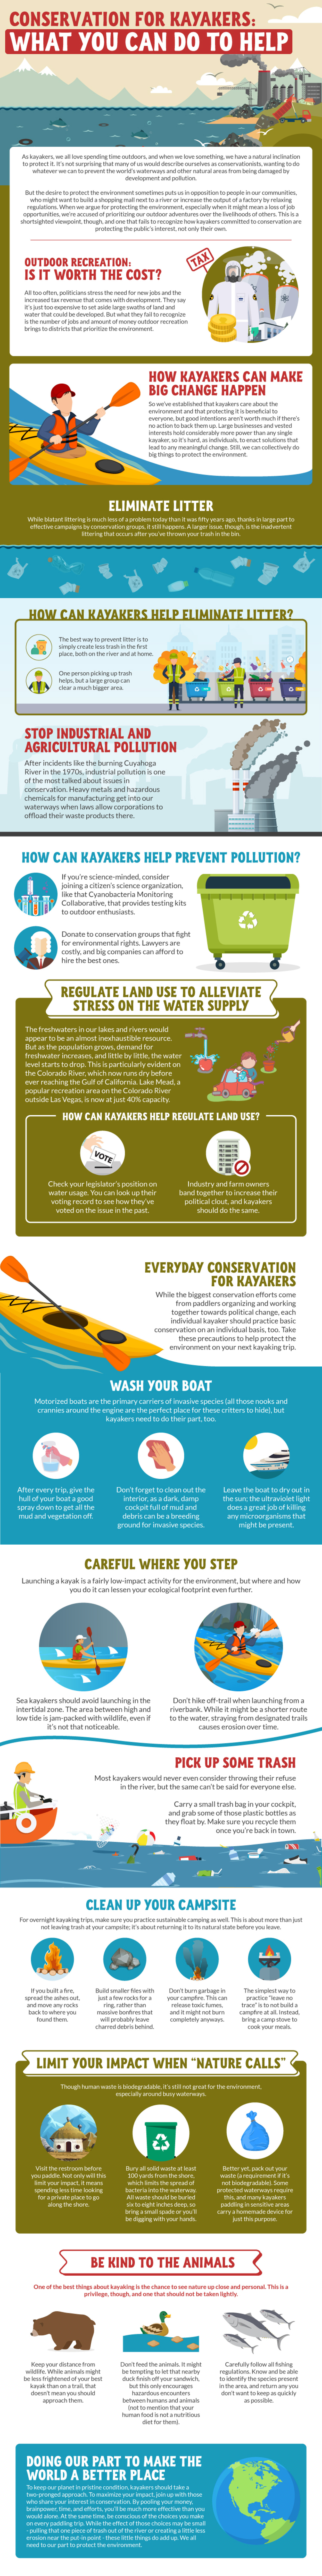 Conservation for Kayakers Infographic